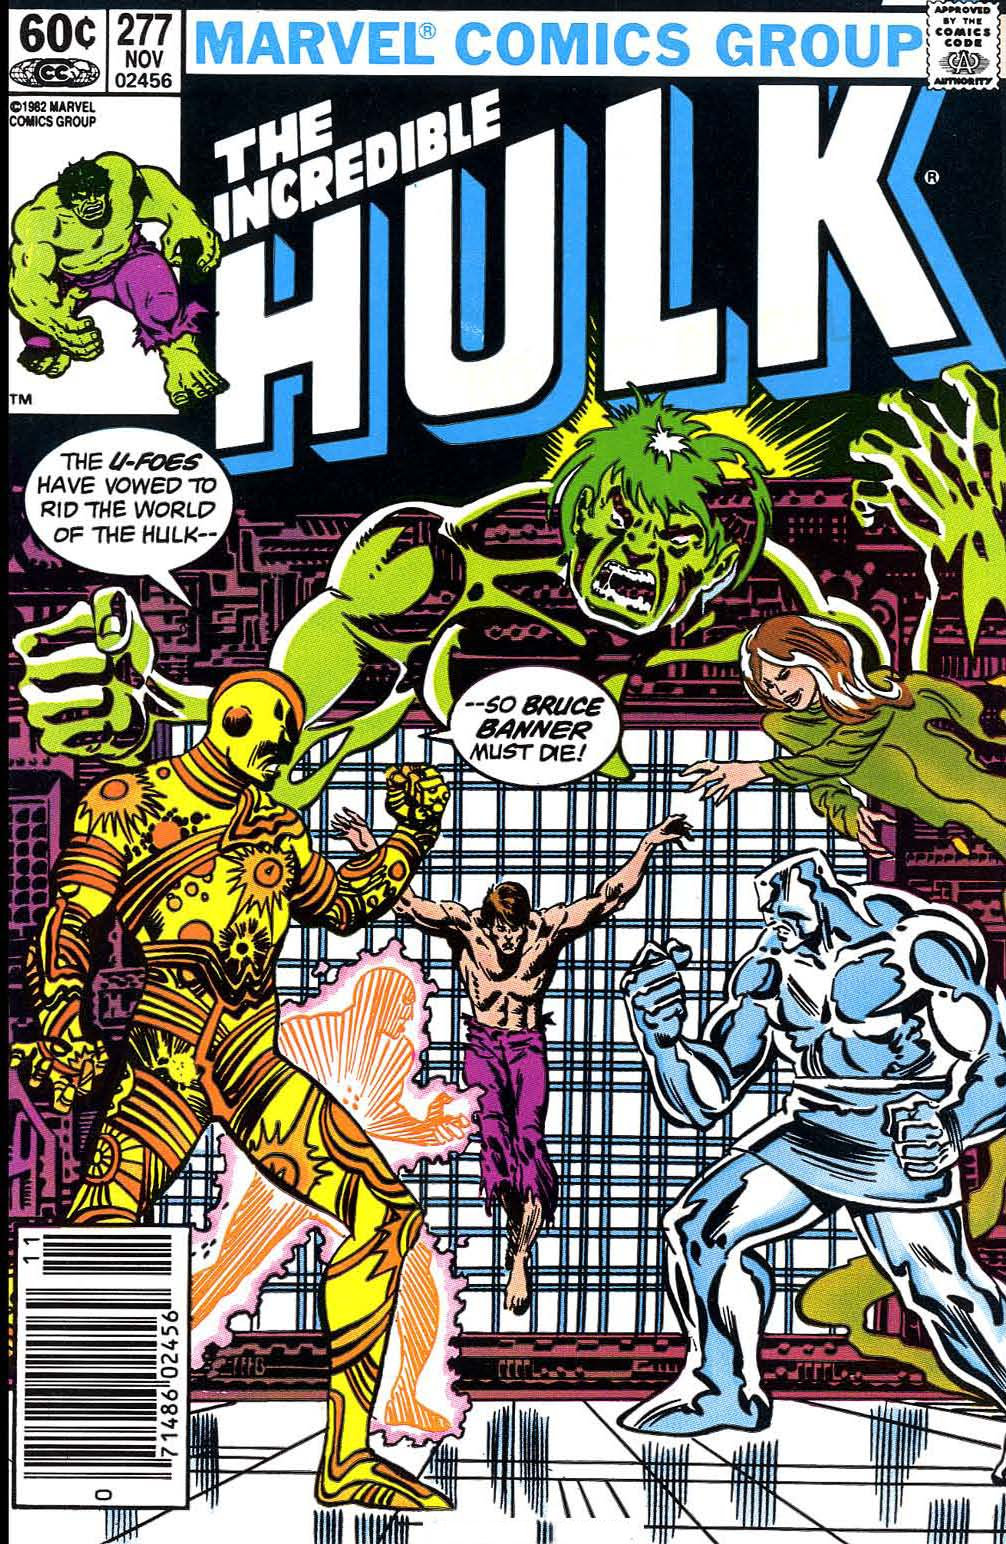 Incredible Hulk (1968) #277, cover penciled by Sal Buscema & inked by Al Milgrom.